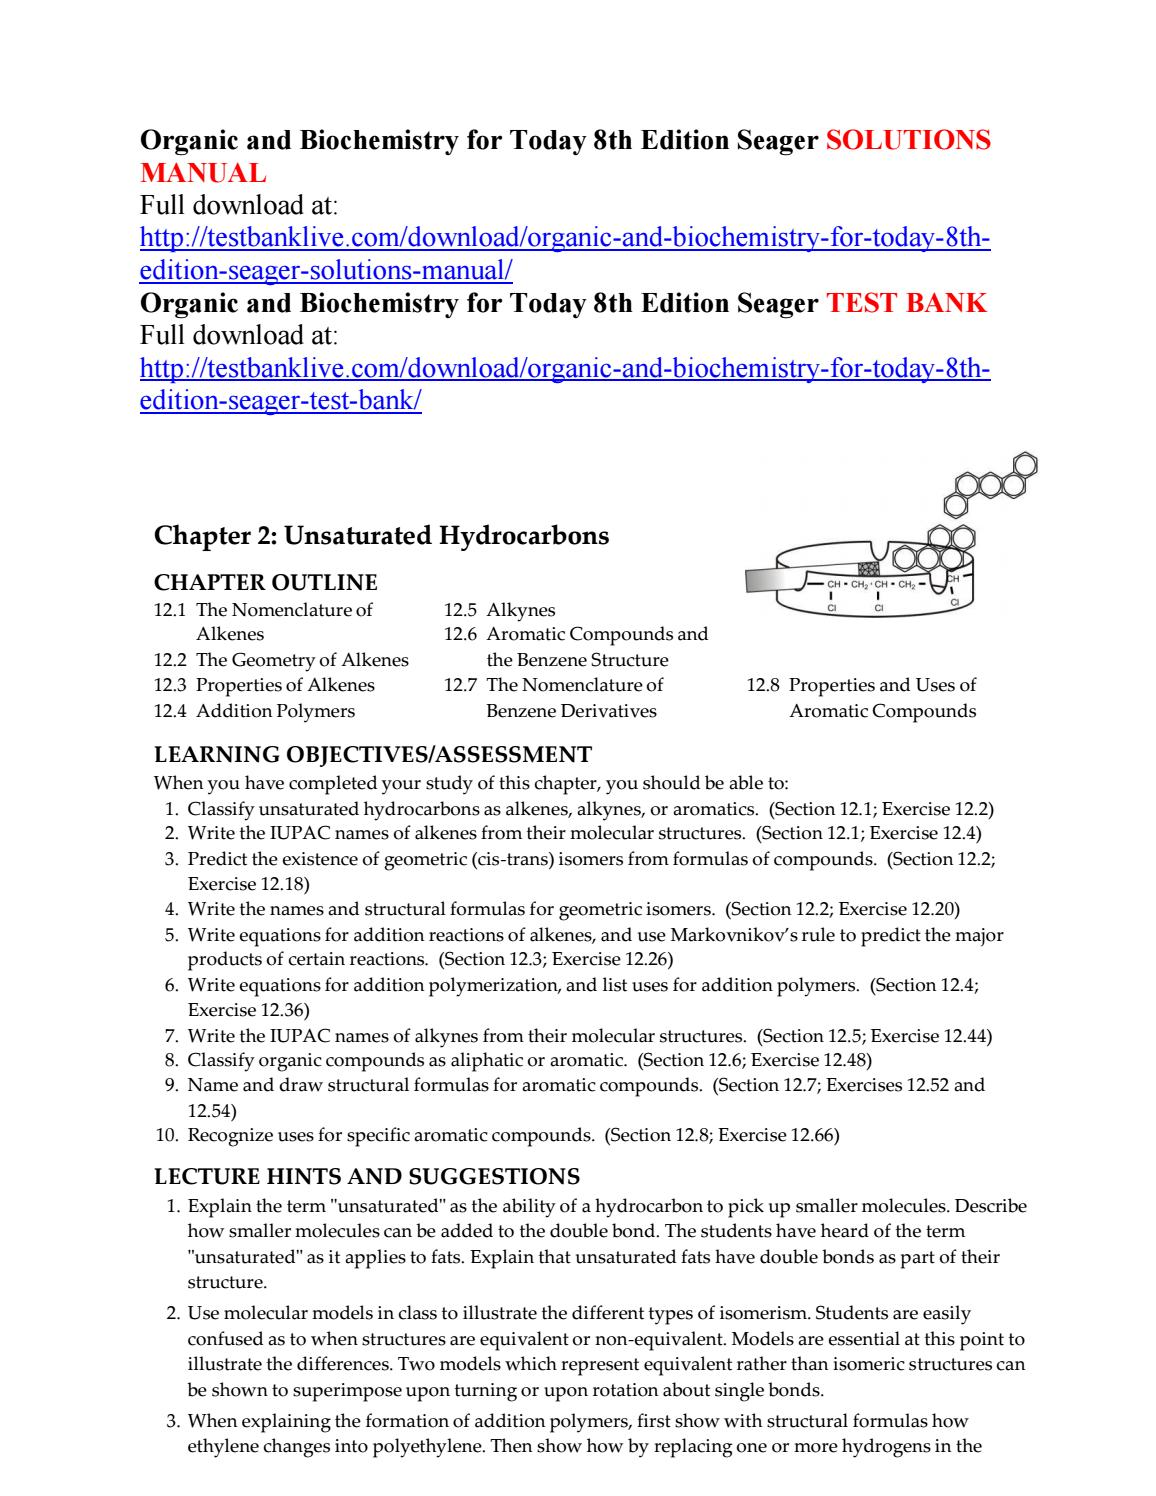 Organic and biochemistry for today 8th edition seager solutions manual by  Krajewski000 - issuu